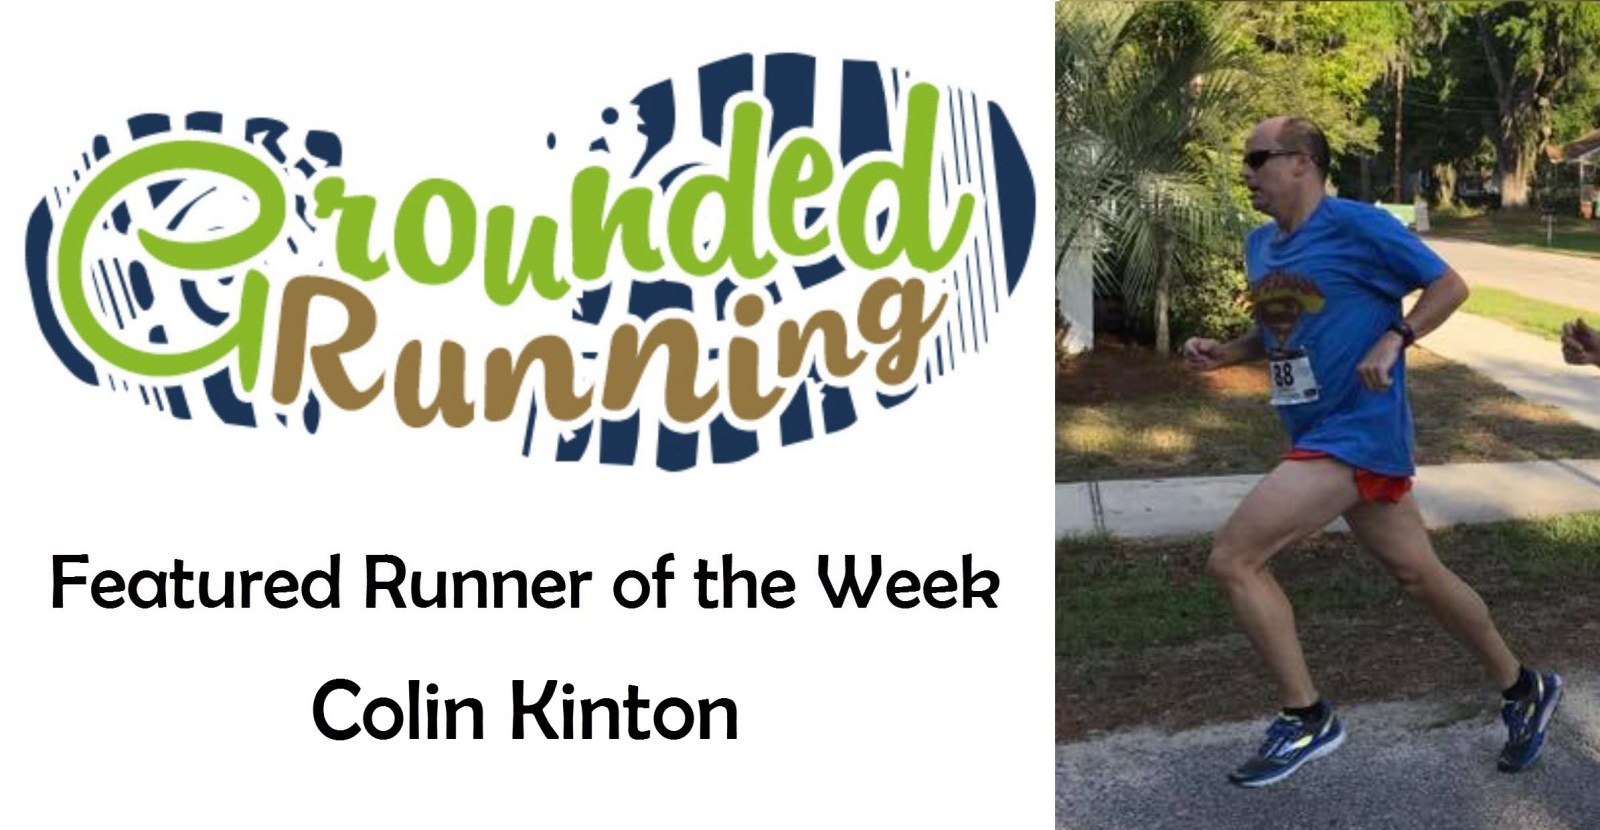 Colin Kinton - Featured Runner of the Week